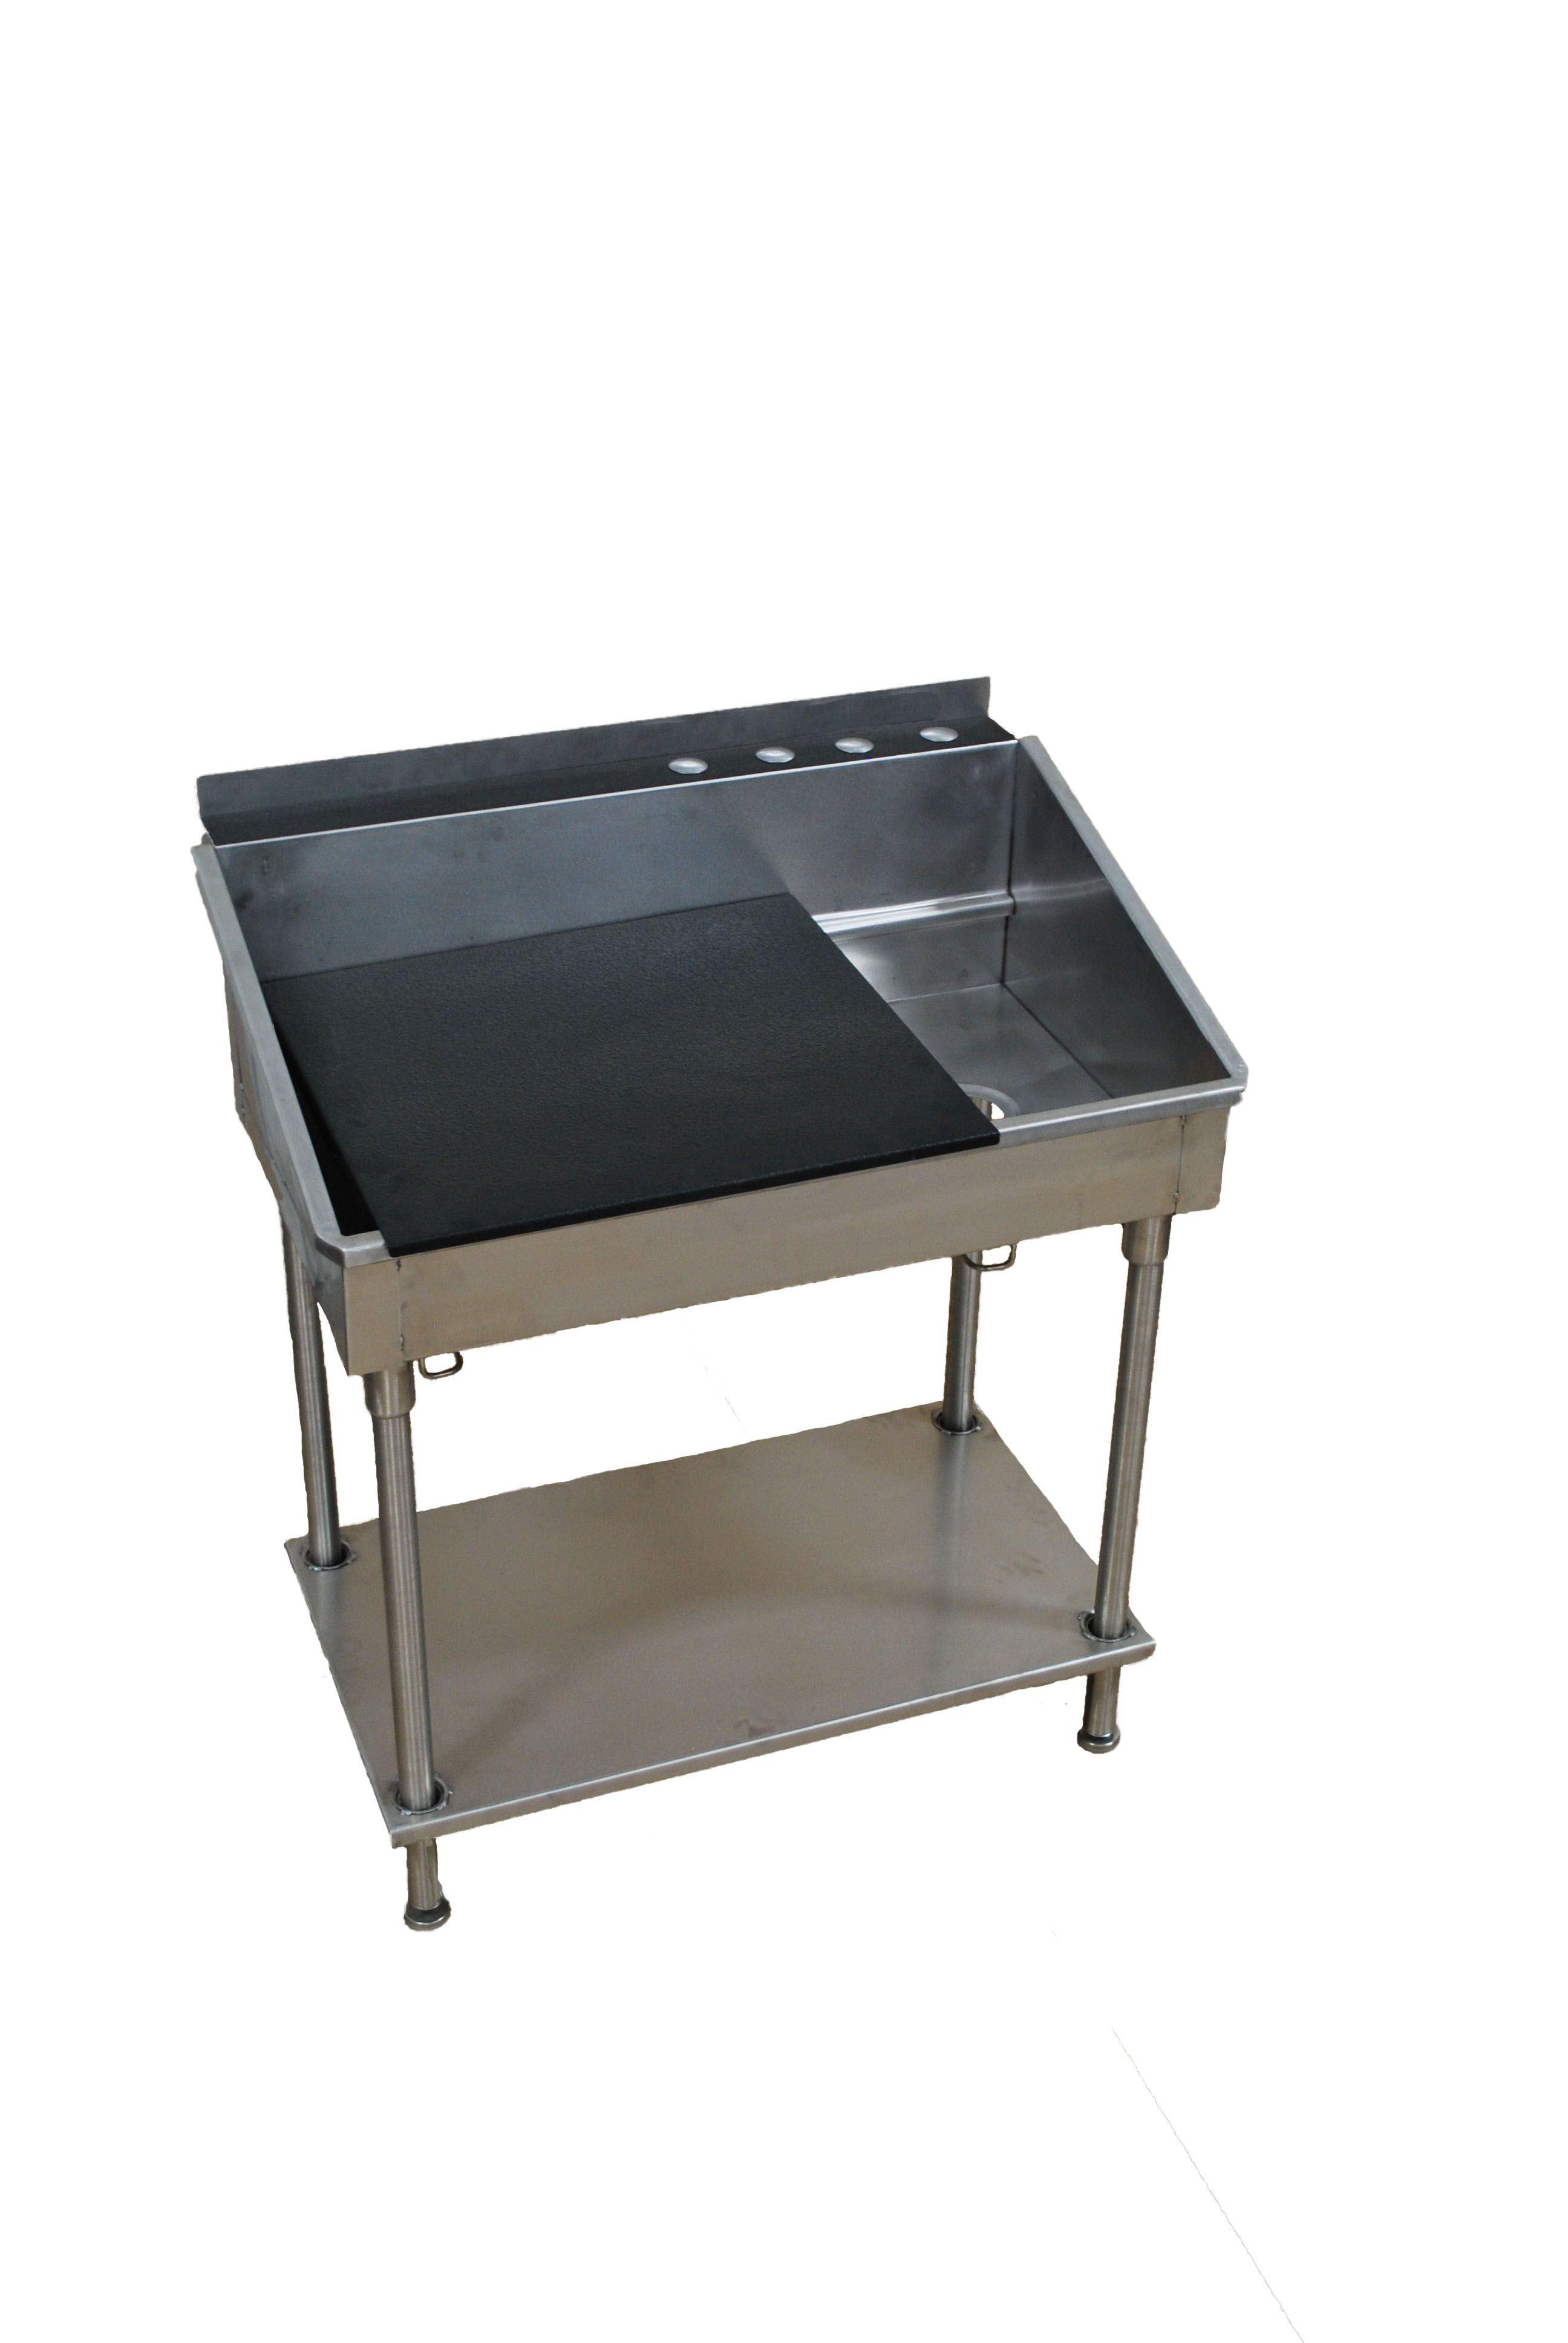 Superb Best Utility Sink With Removable Counter Top/ Laundry Sink/ Kitchen Sink/ Utility  Sink